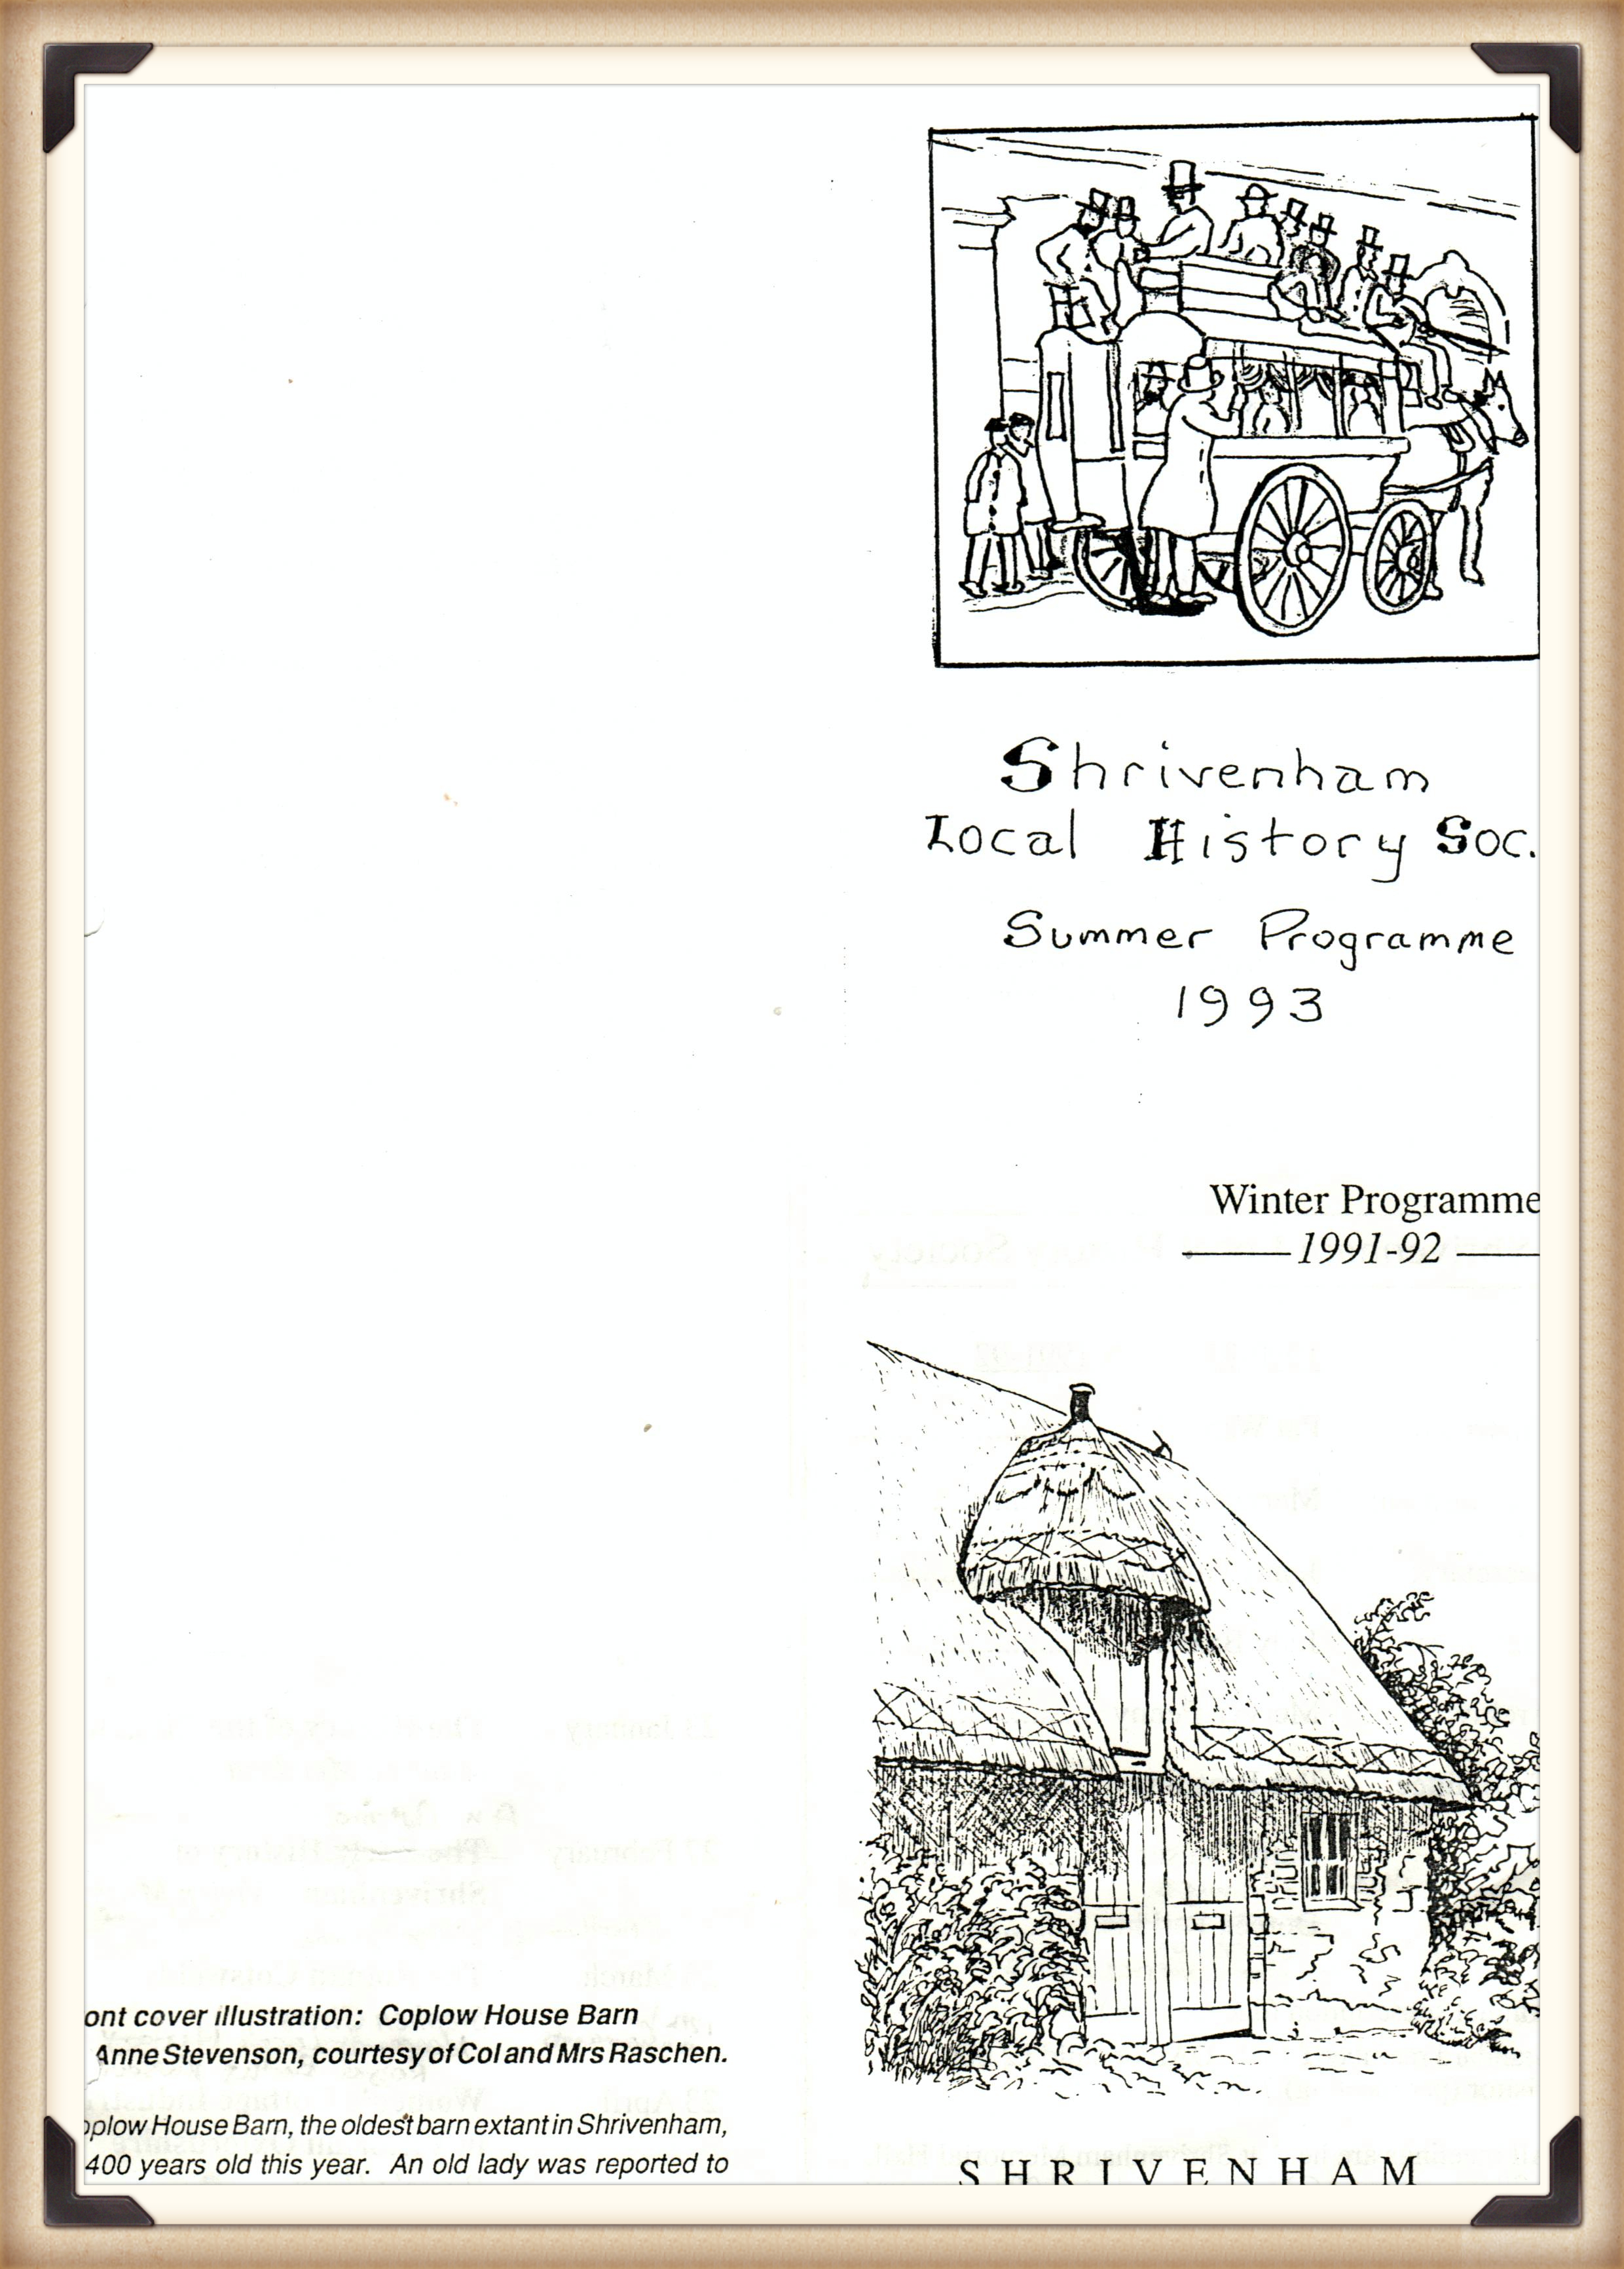 Front cover of SLHS Summer Programme 1993